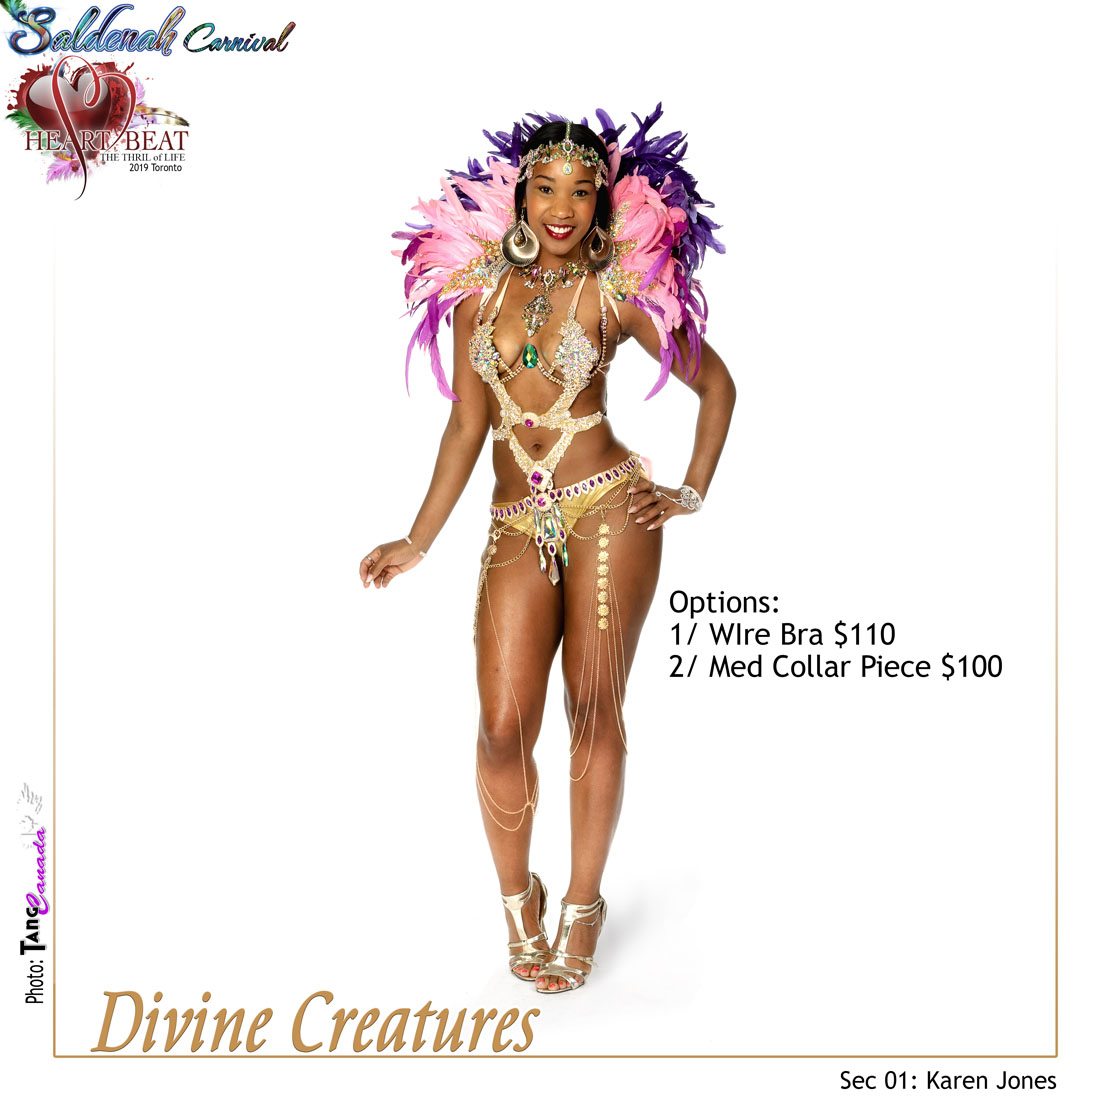 Saldenah Carnival Section 1 Divine Creatures